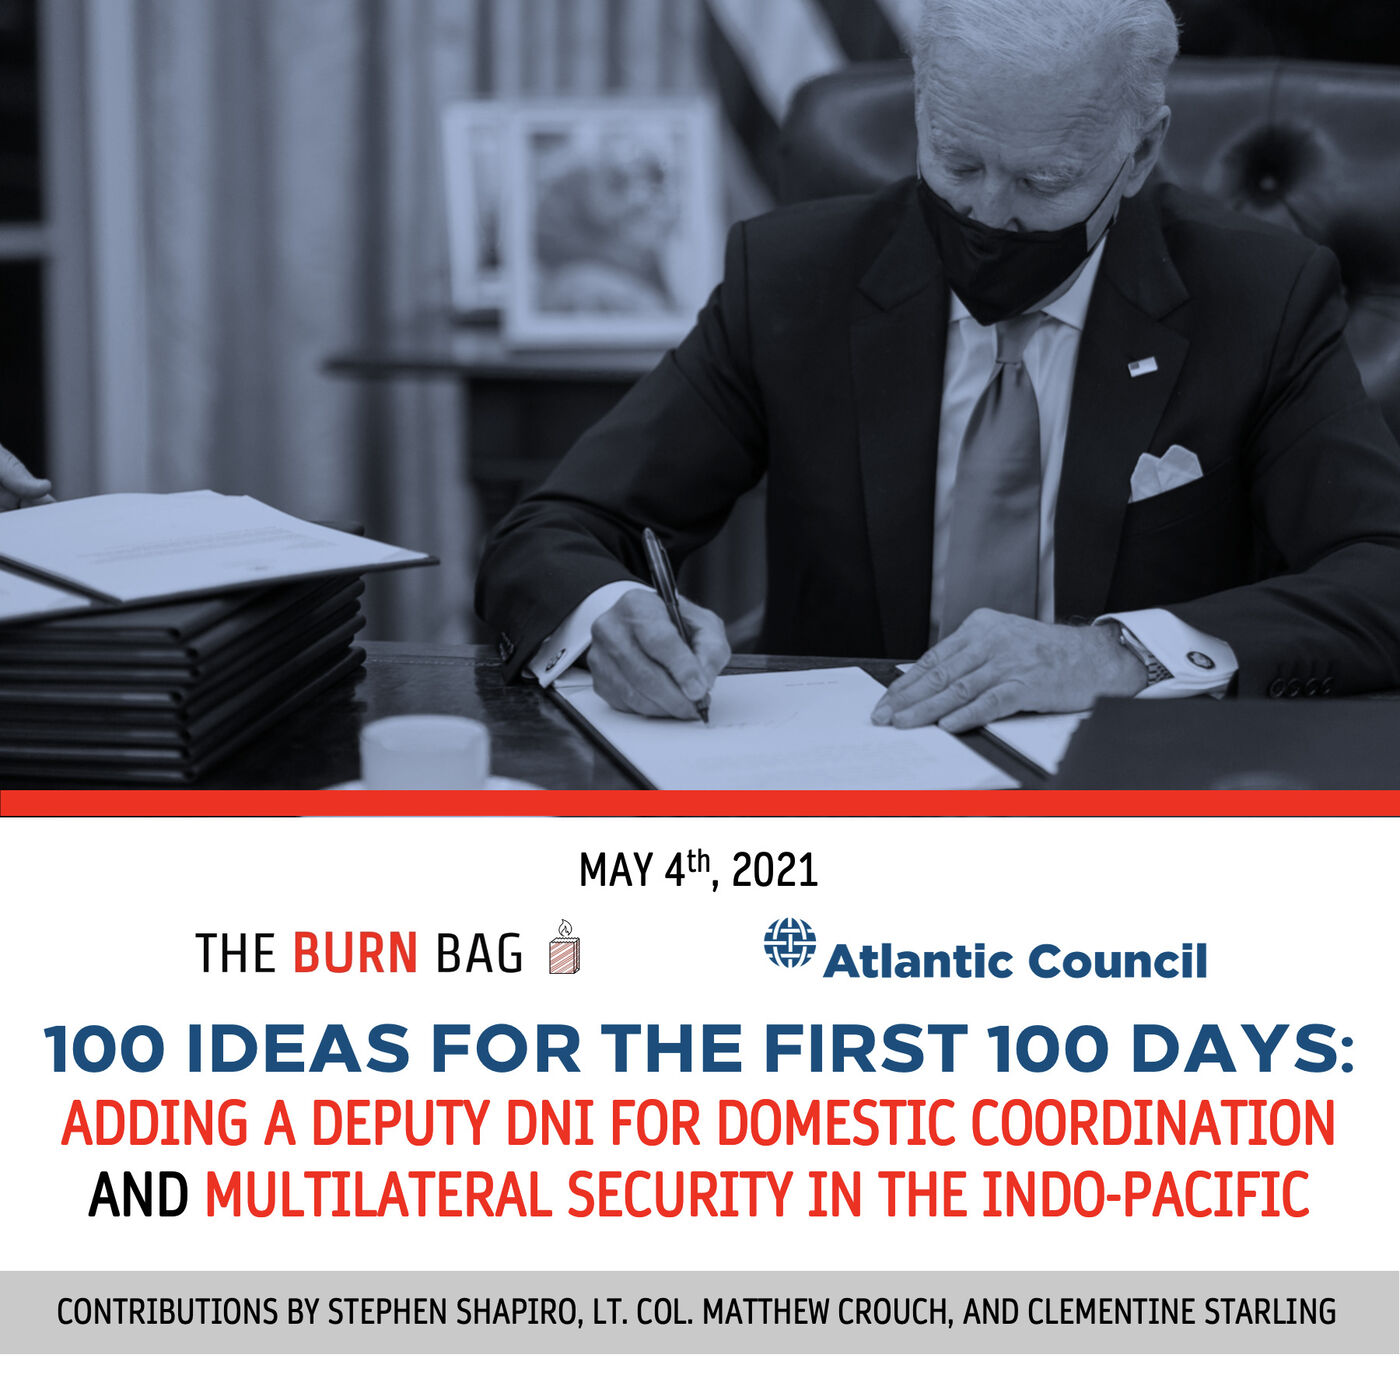 100 Ideas for the First 100 Days: Adding a Deputy DNI for Domestic Coordination and Multilateral Security in the Indo-Pacific